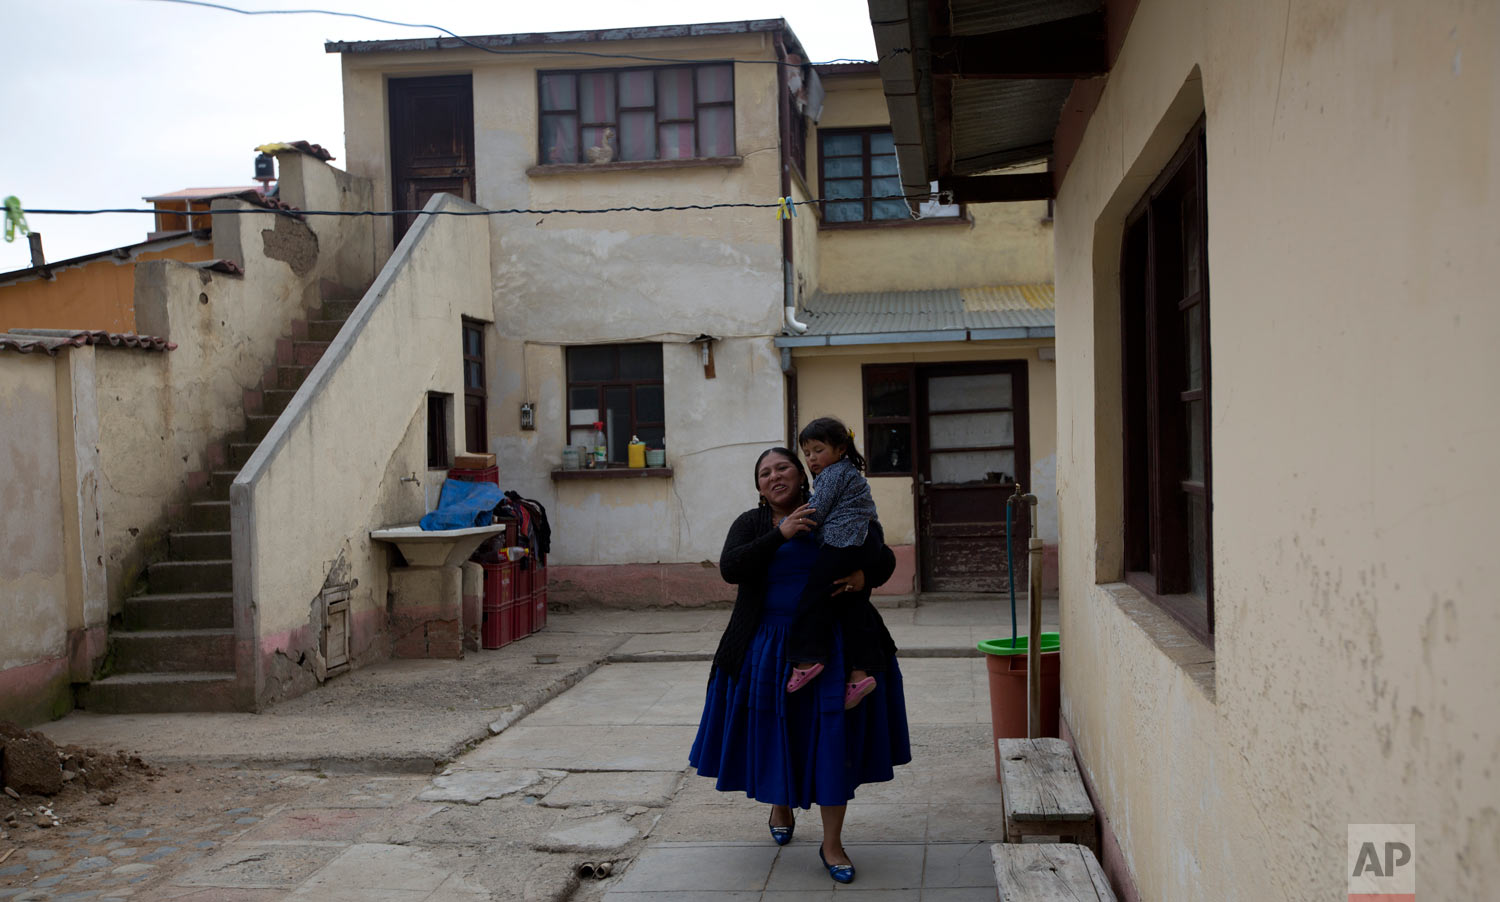 Reyna Torrez carries her daughter Lydia after an interview at her home in El Alto, Bolivia, Monday, Feb. 18, 2019. (AP Photo/Juan Karita)